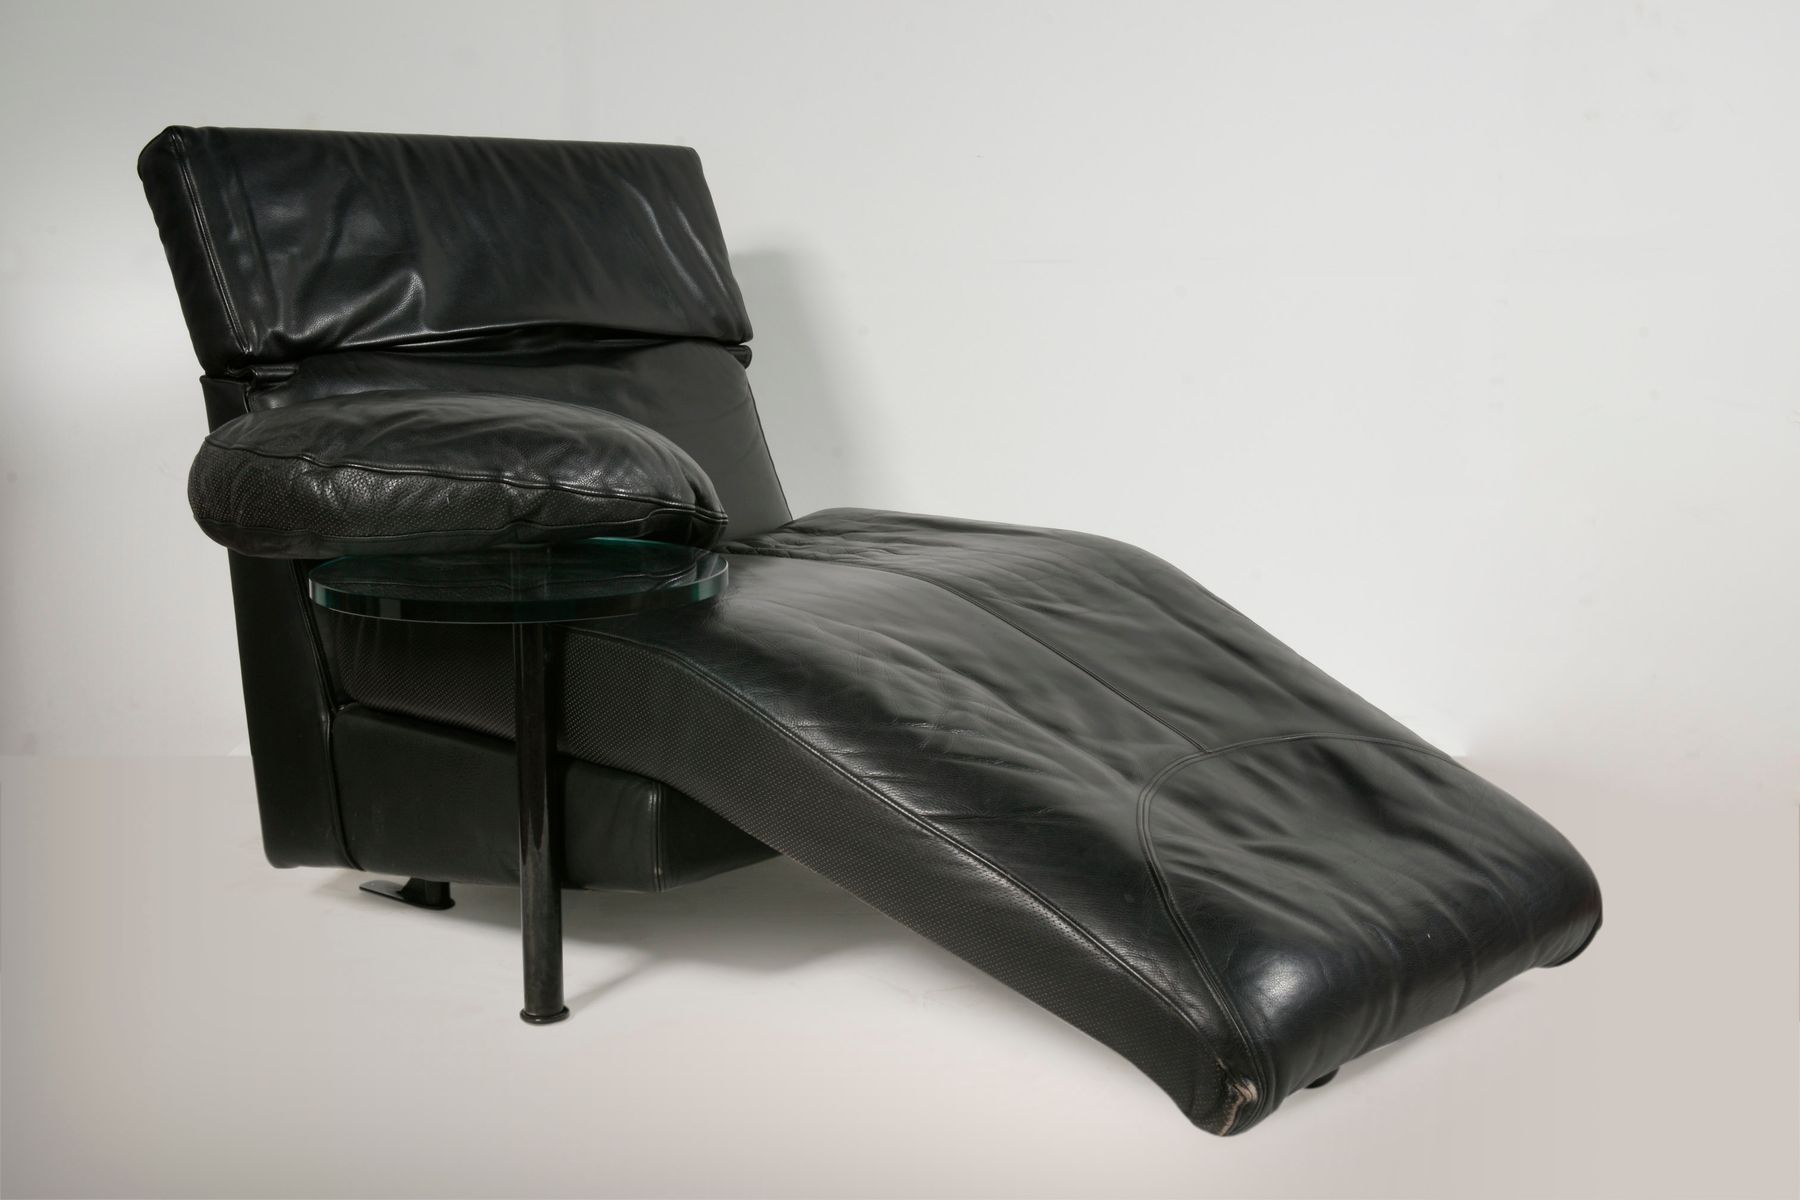 vintage chaise longue by paolo piva for b b italia for. Black Bedroom Furniture Sets. Home Design Ideas